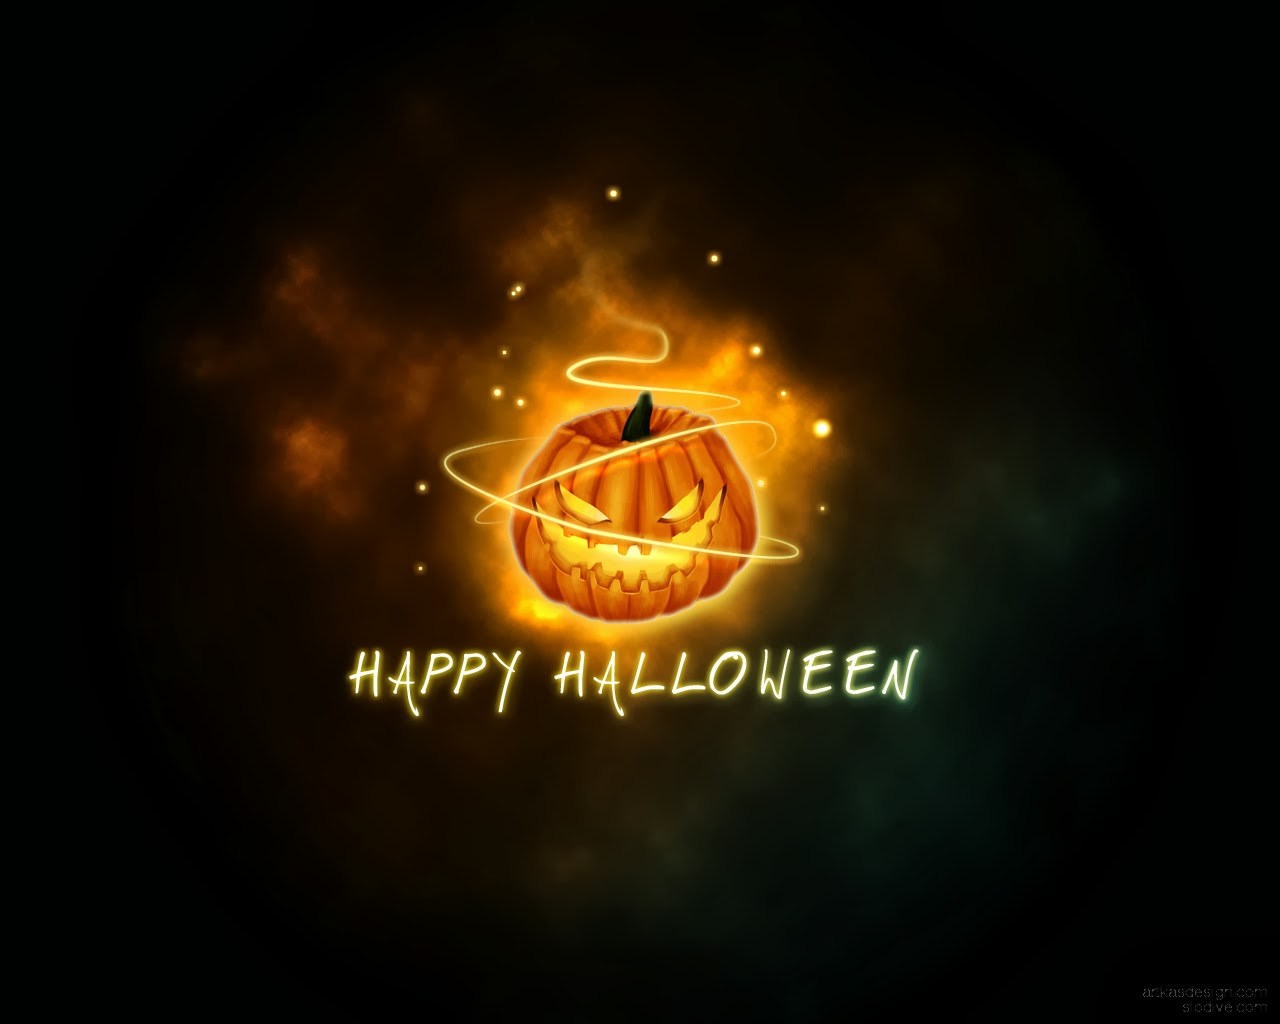 Download Halloween Wallpapers  Most beautiful places in the world  Download...